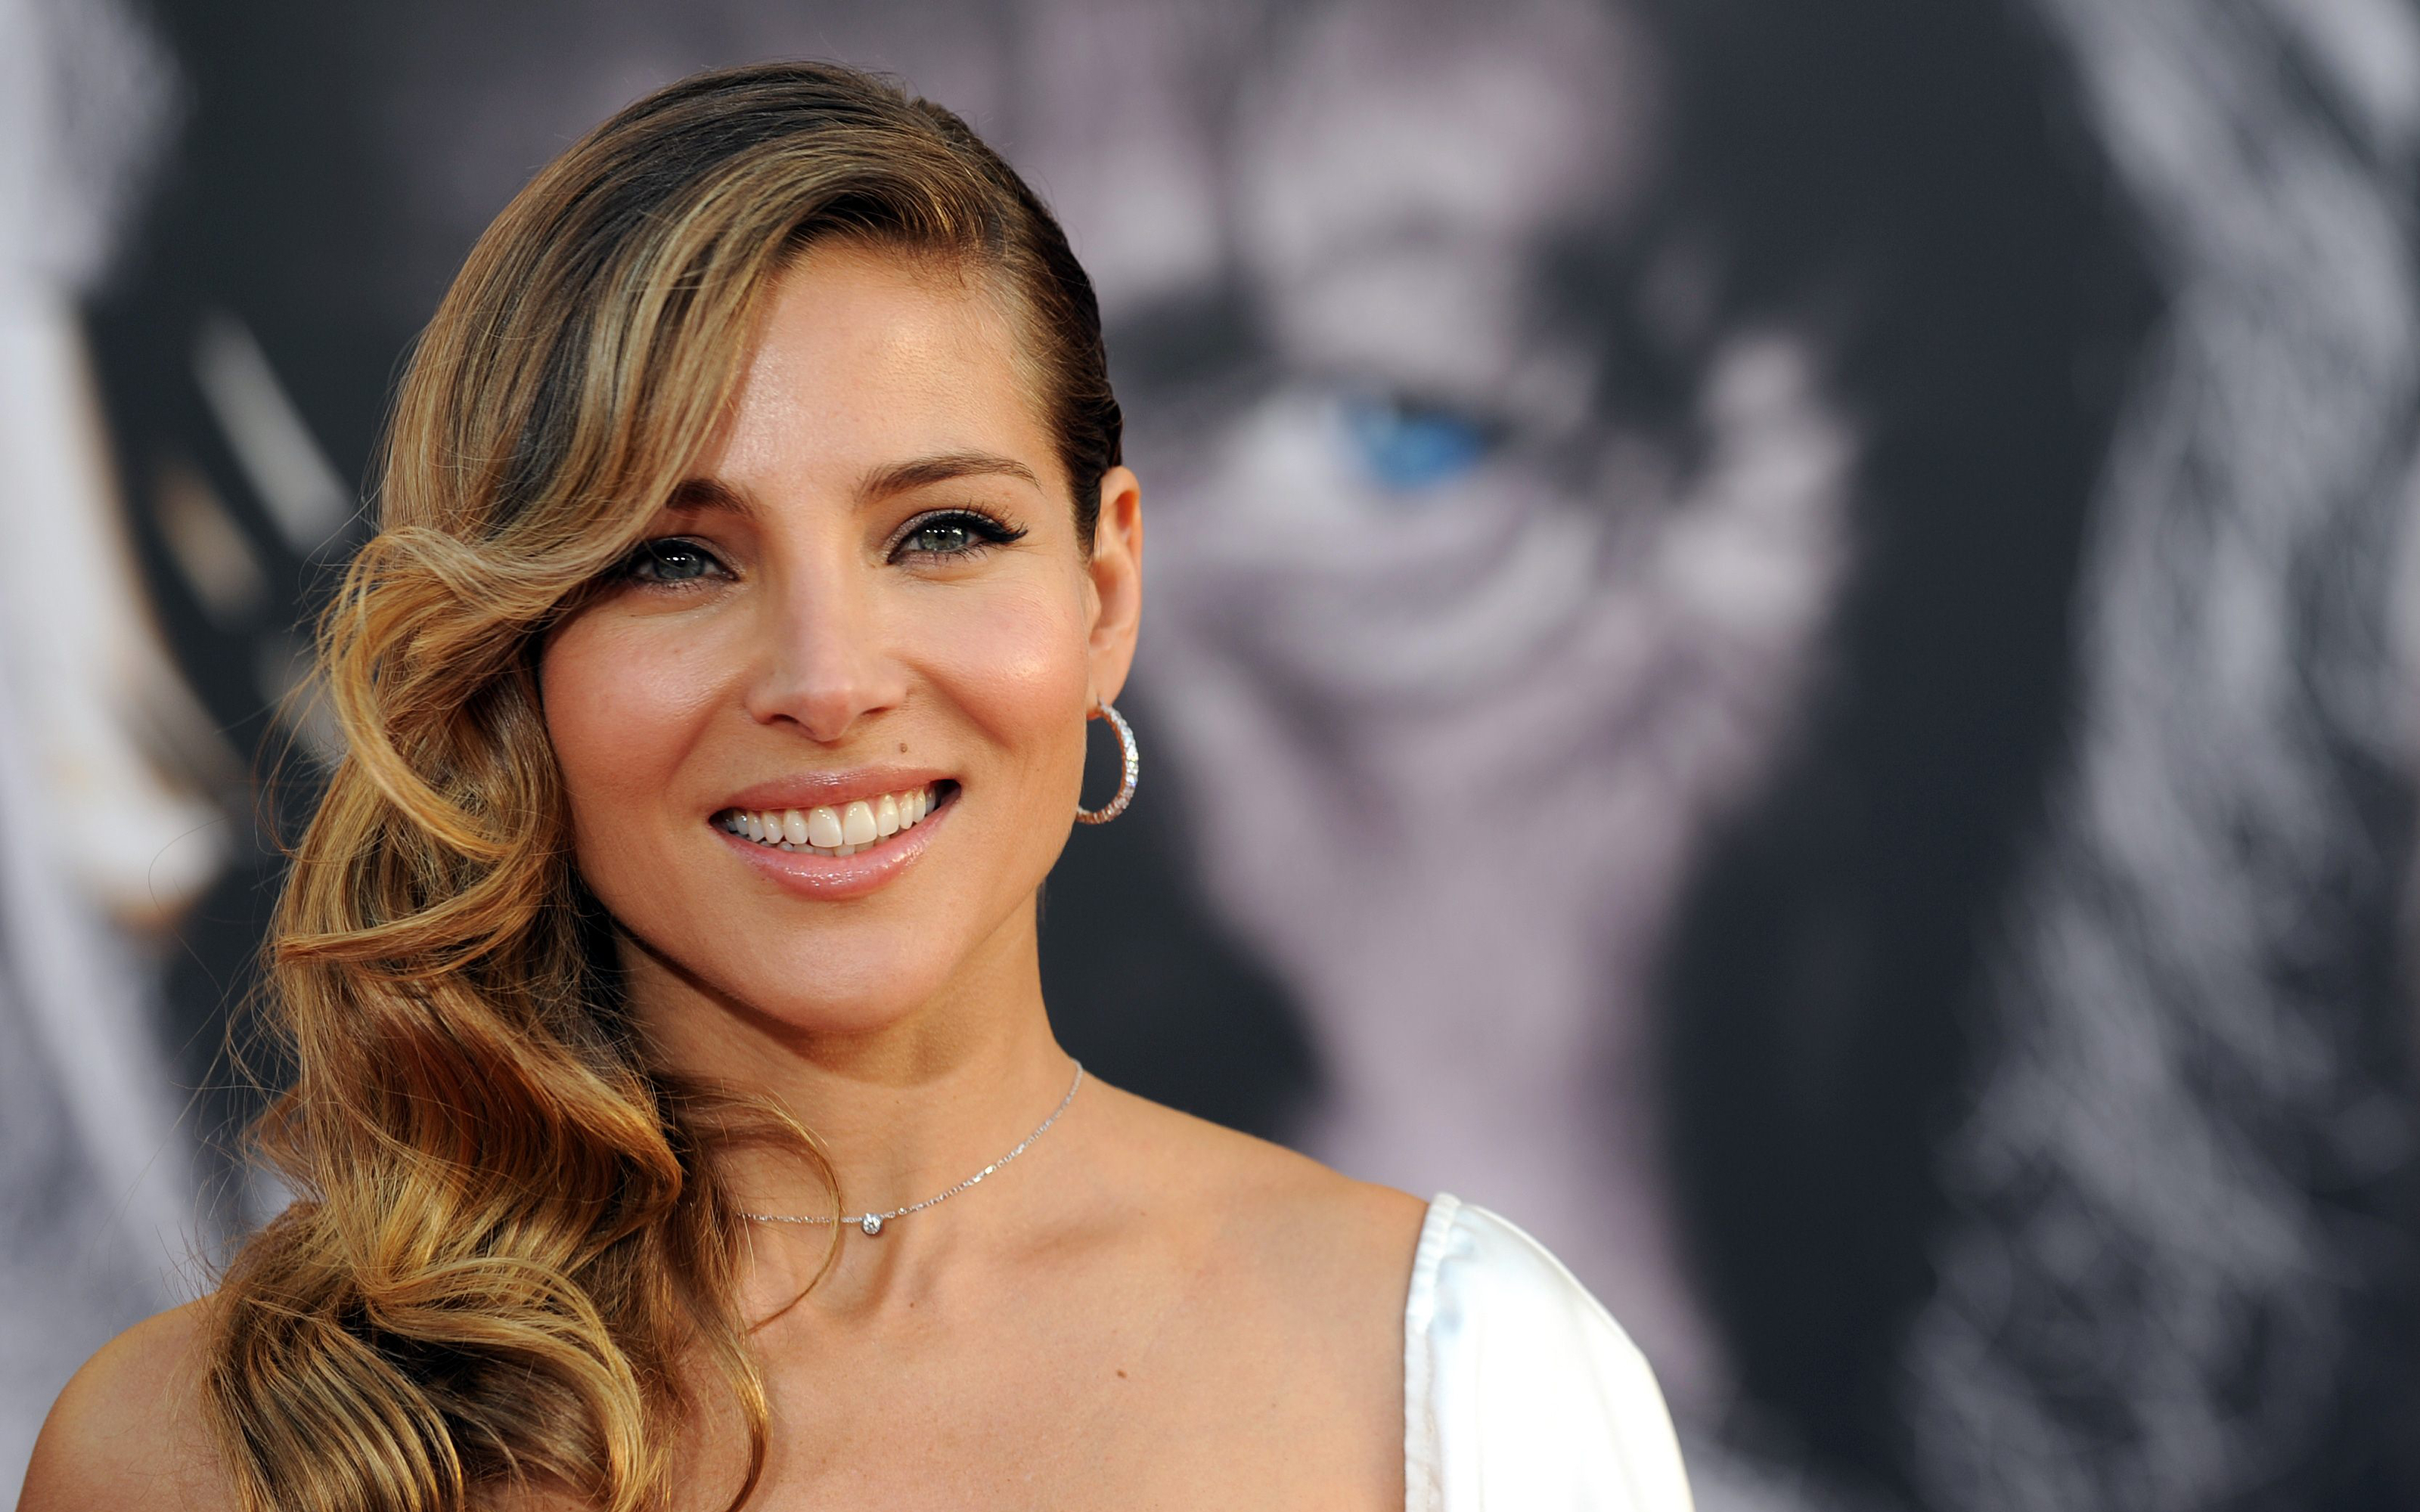 Elsa pataky wallpapers high resolution and quality download - High resolution wallpaper celebrity ...